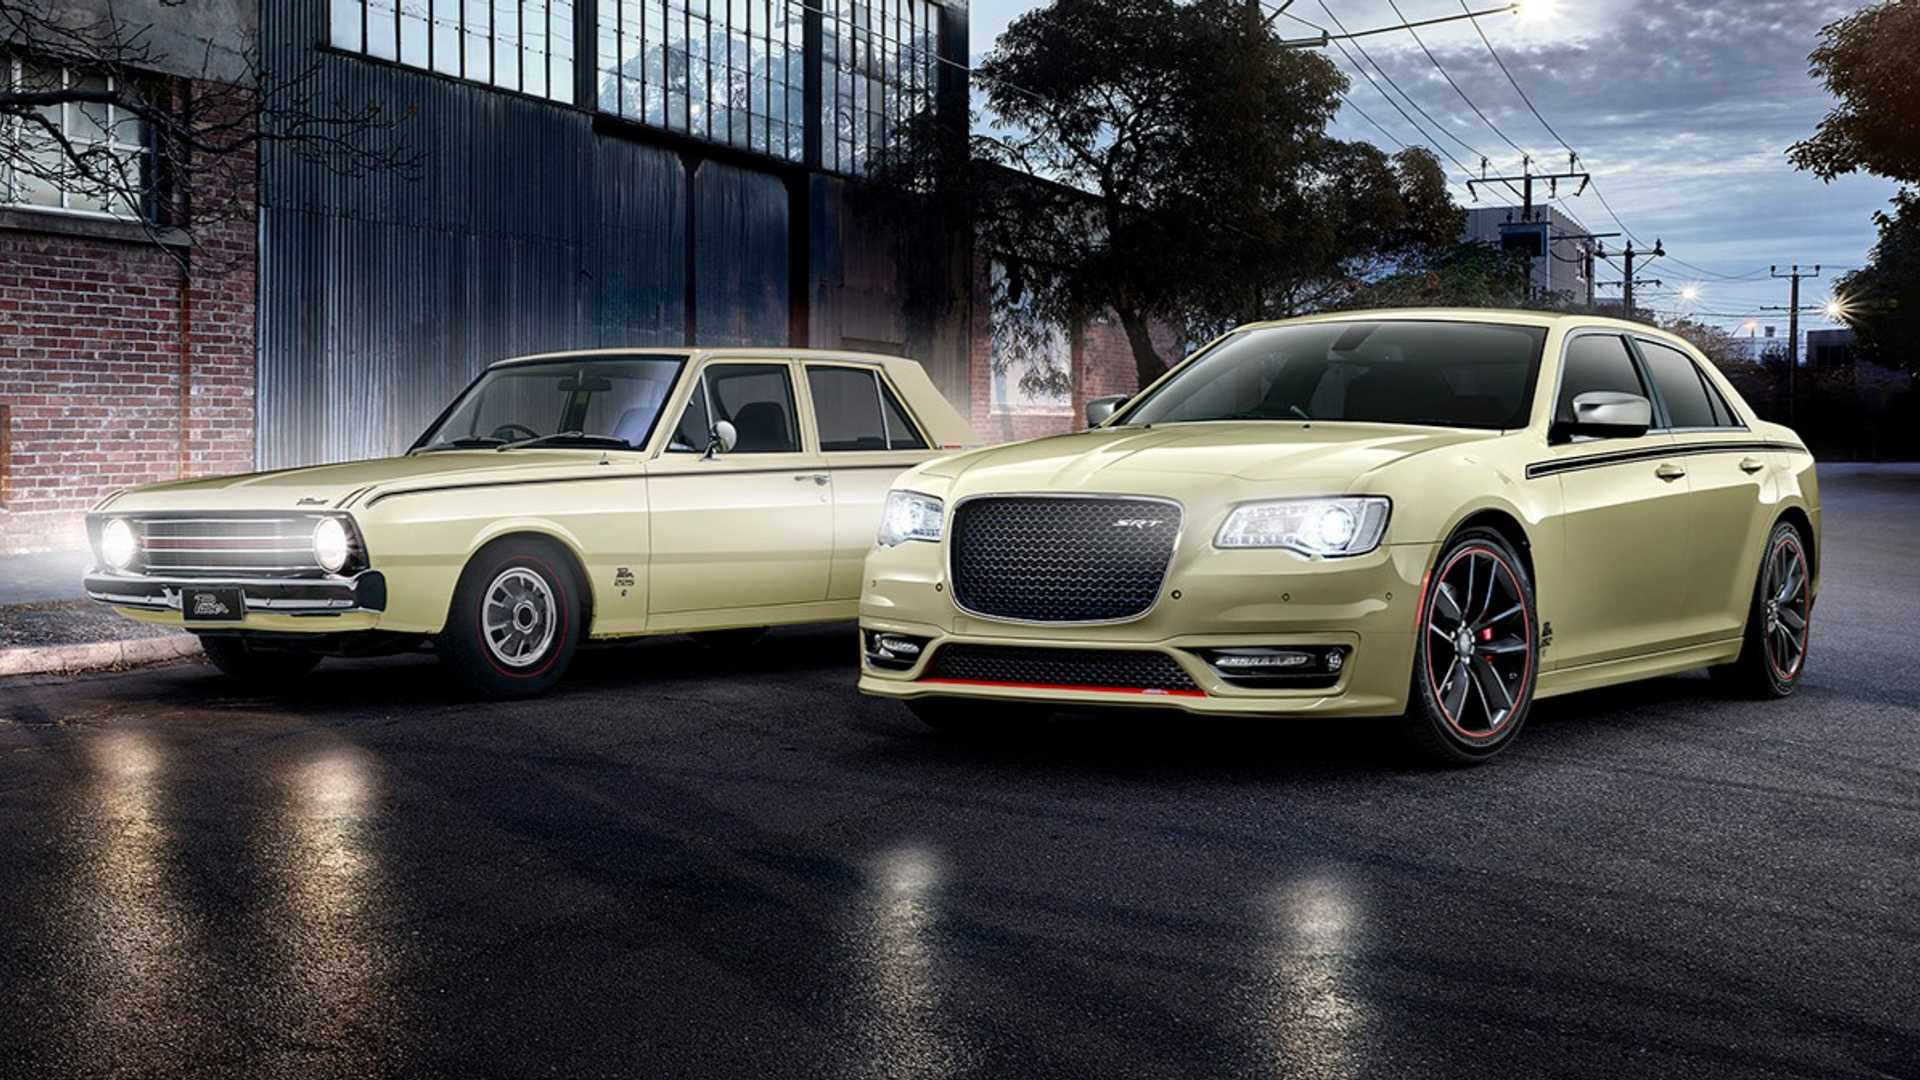 2021 Chrysler 300 Srt8 Release Date and Concept